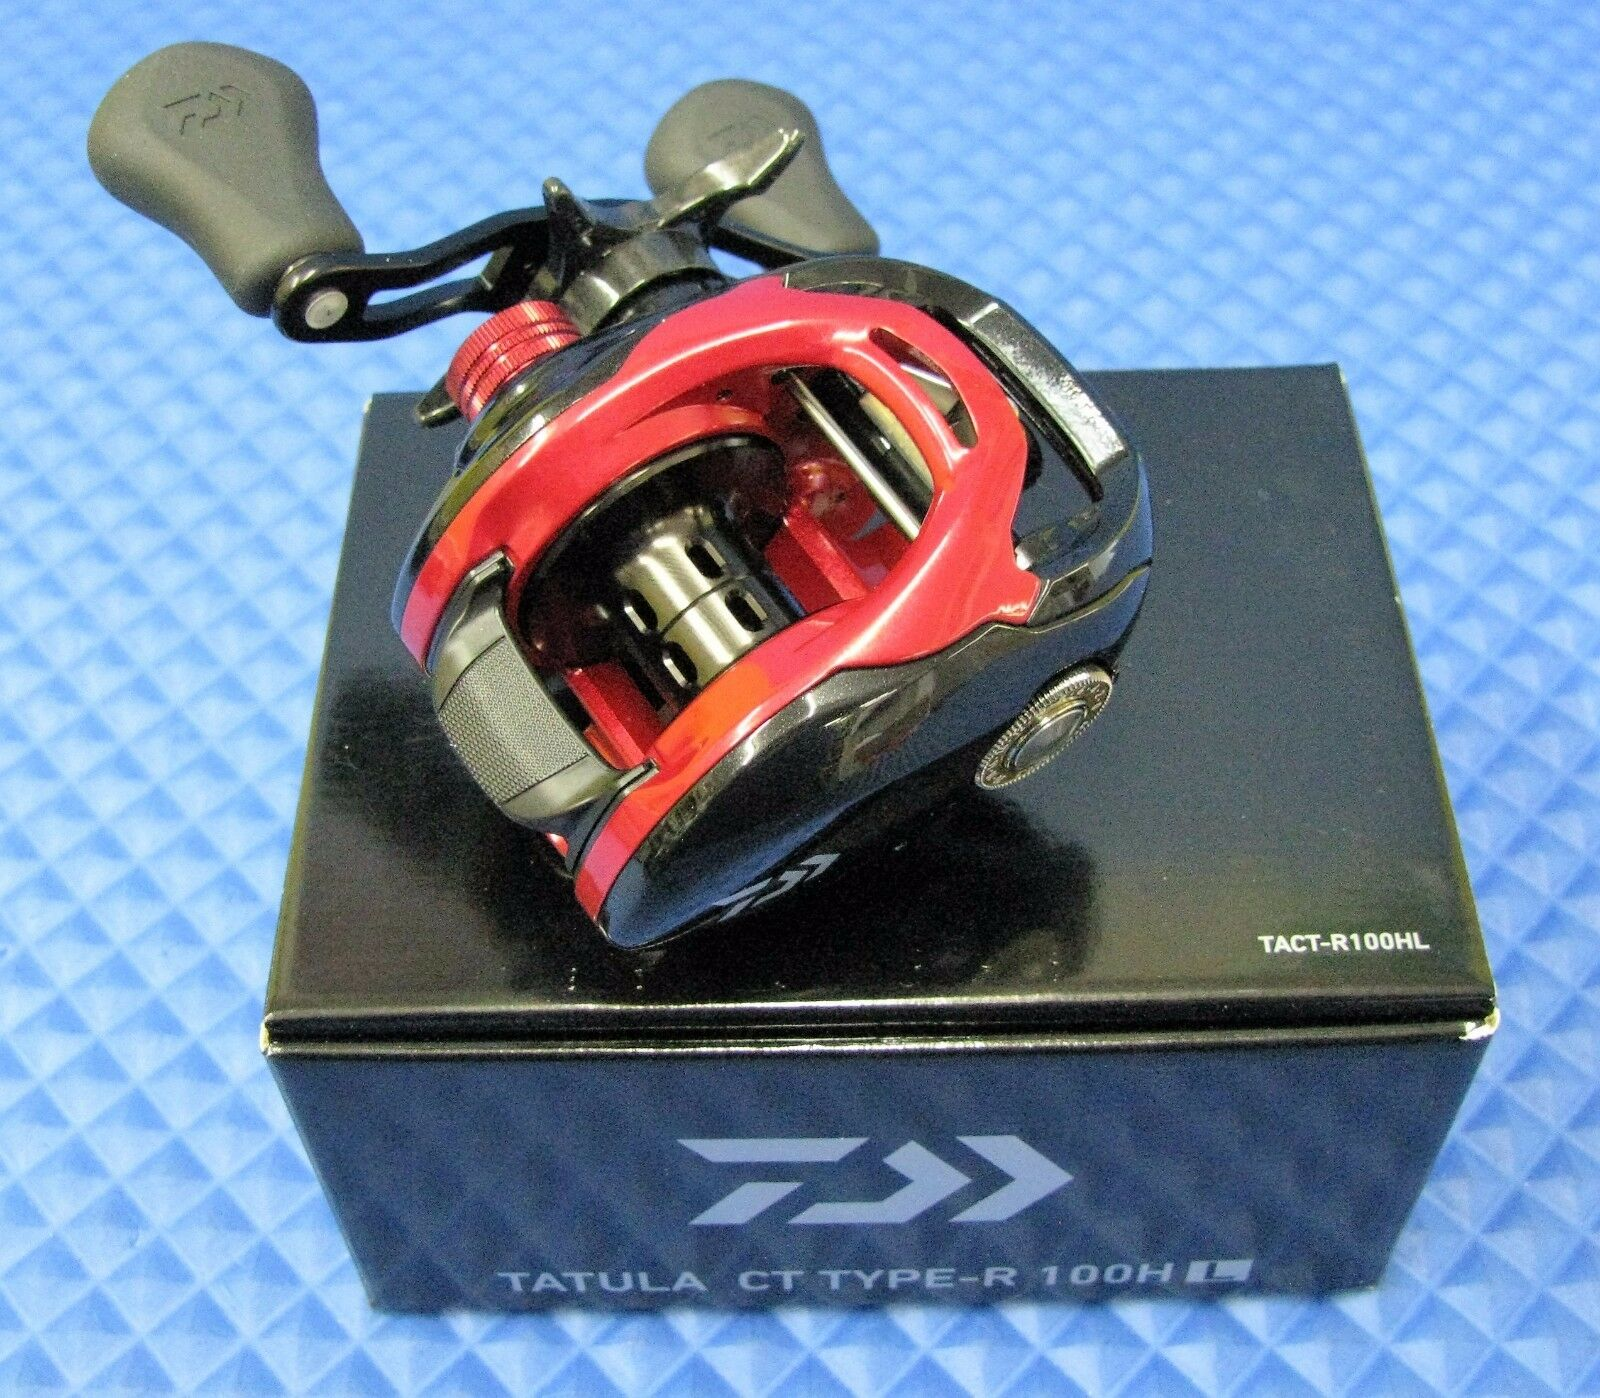 Daiwa Baitcasting Reel With Double Handle Tatula  CT Type-R 100HL TACT-R100HL  online sale